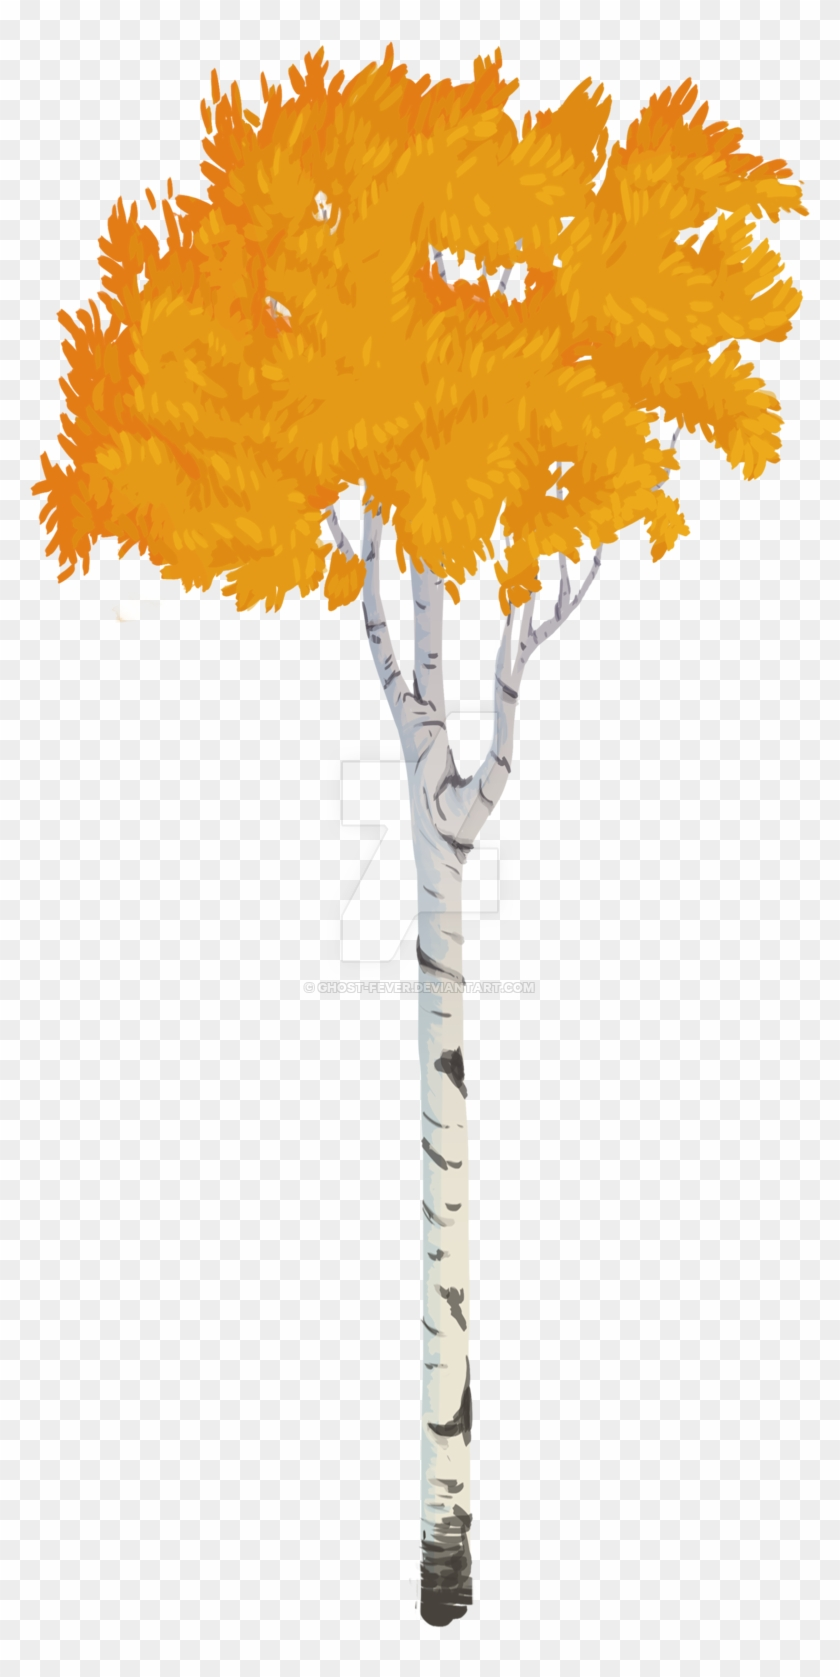 Ghost Fever 9 0 Aspen Tree Vector Style By Ghost Fever - Aspen Tree Png #31083